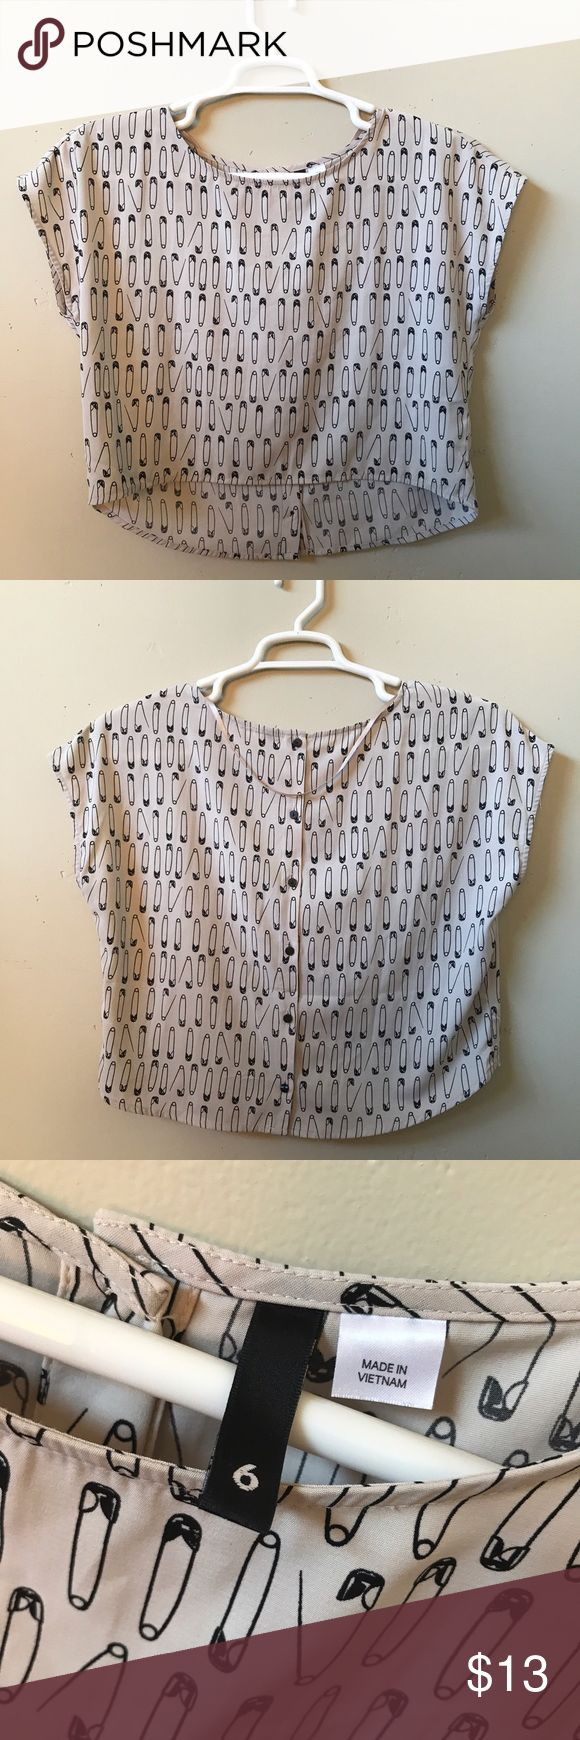 Cropped Paperclip H&M Top A cute beige crop top with a black paperclip pattern, and buttons running down the back. This was very loved, but is still in great condition. Perfect for summer, size 6! H&M Tops Crop Tops